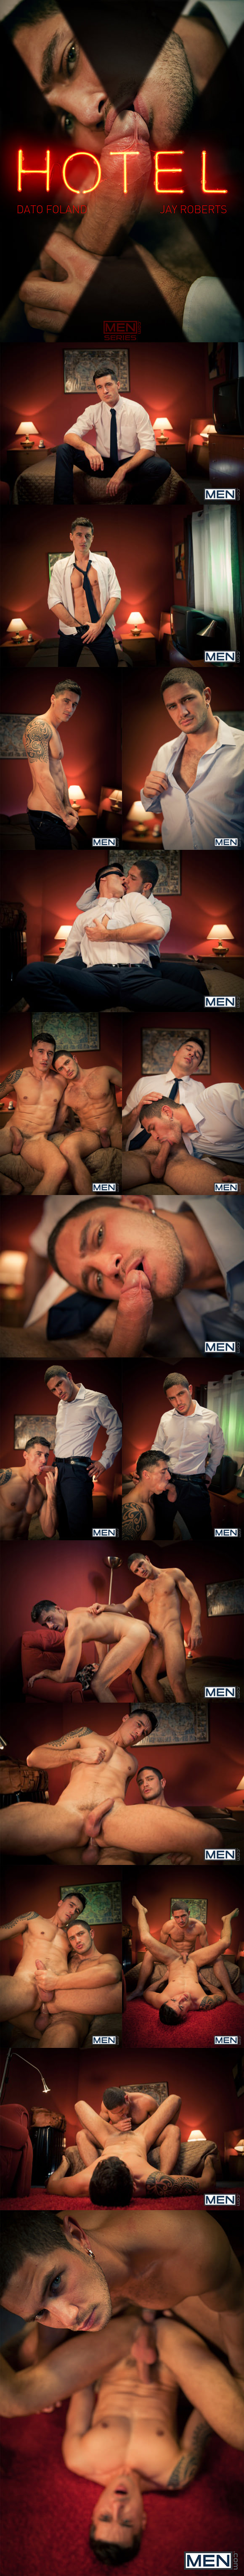 the-gay-office-hotel-x-1-jay-roberts-dato-foland